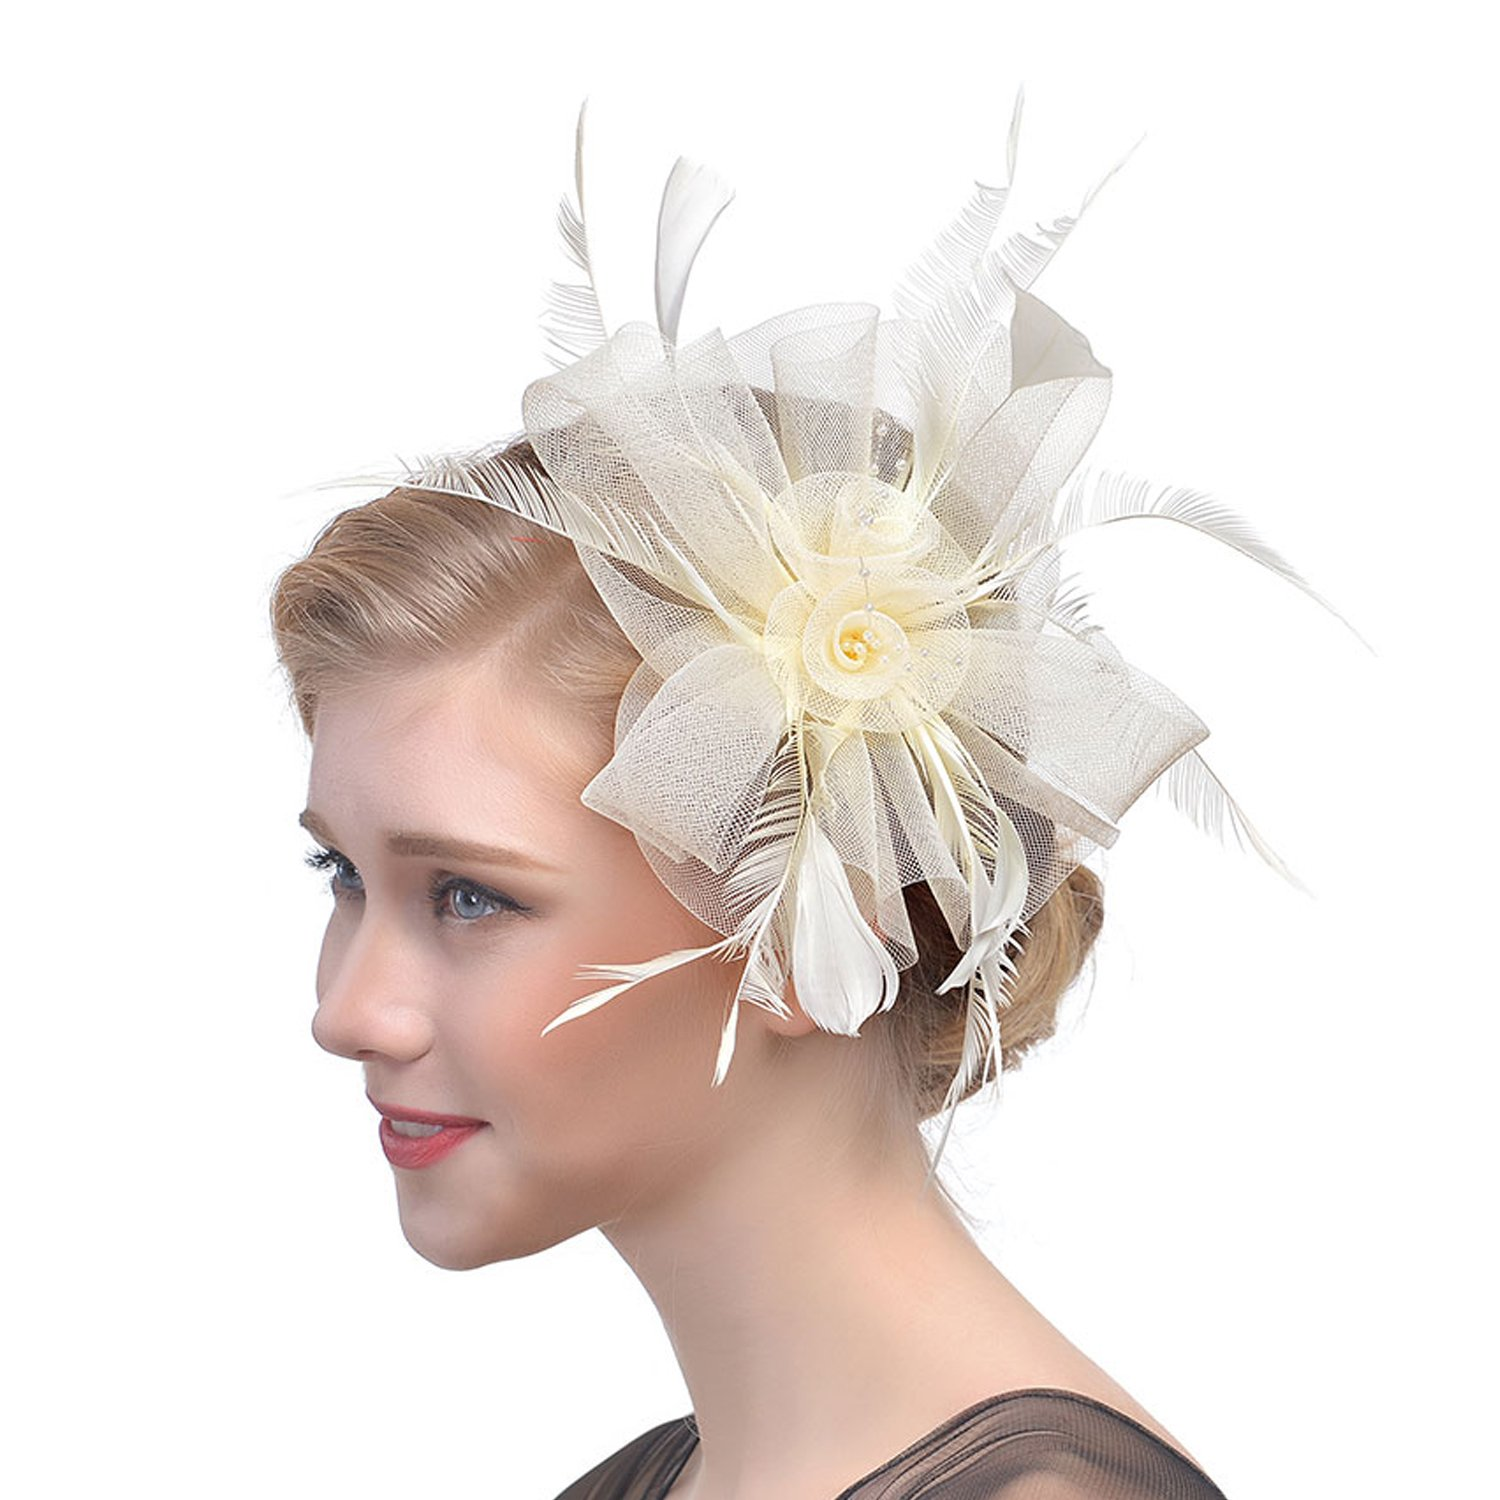 3f00b6bf2789f qnprt Women s Sinamay Fascinator Hair Clip Top Hat